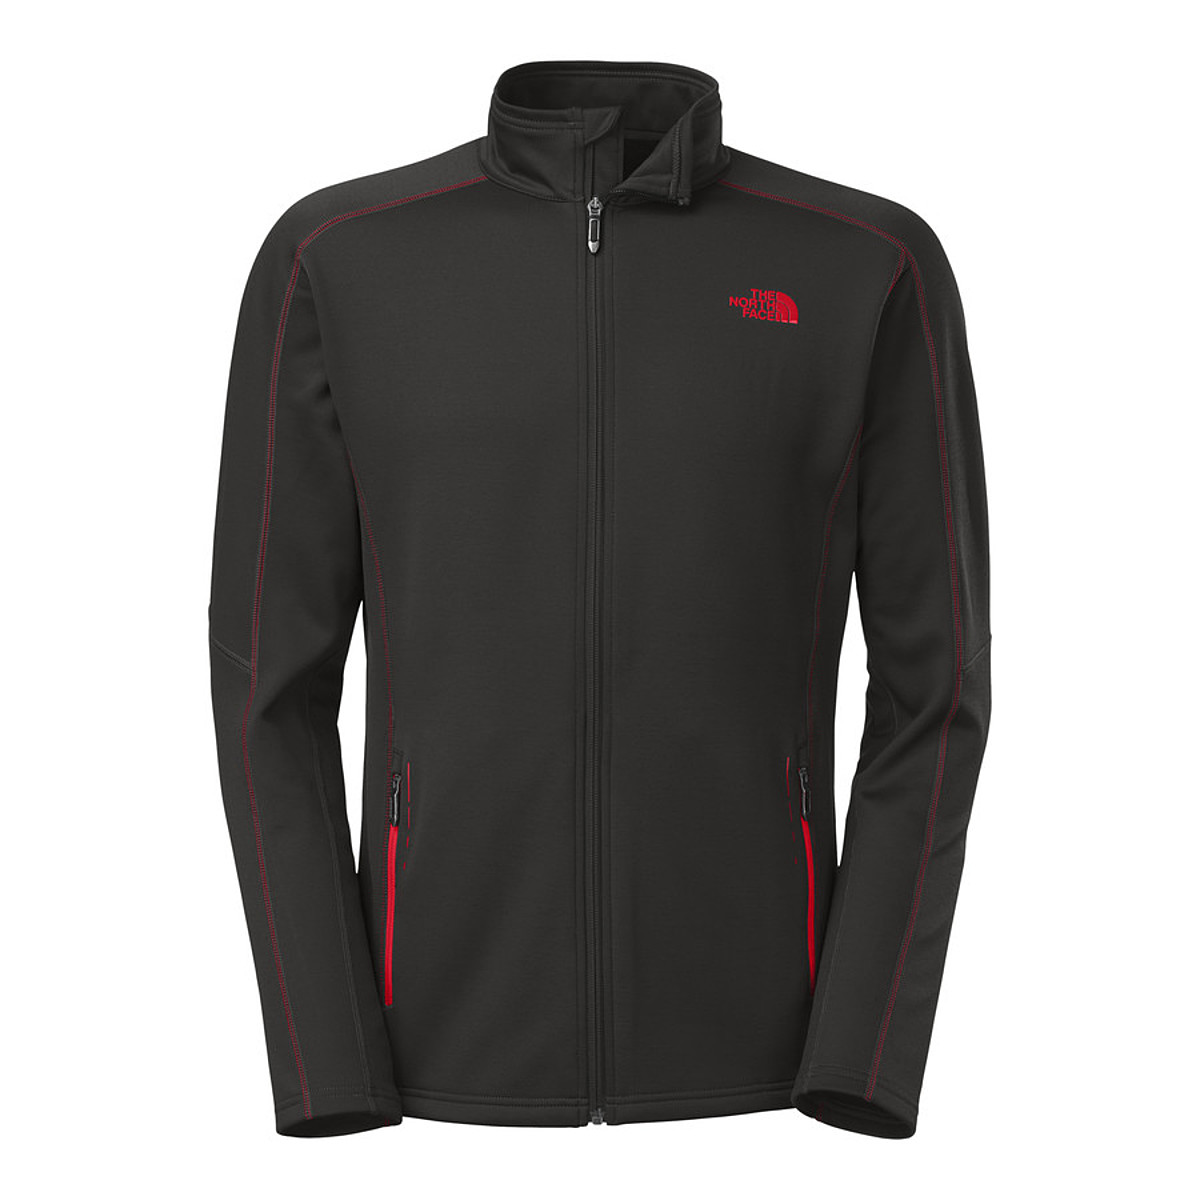 The North Face Stokes Full Zip